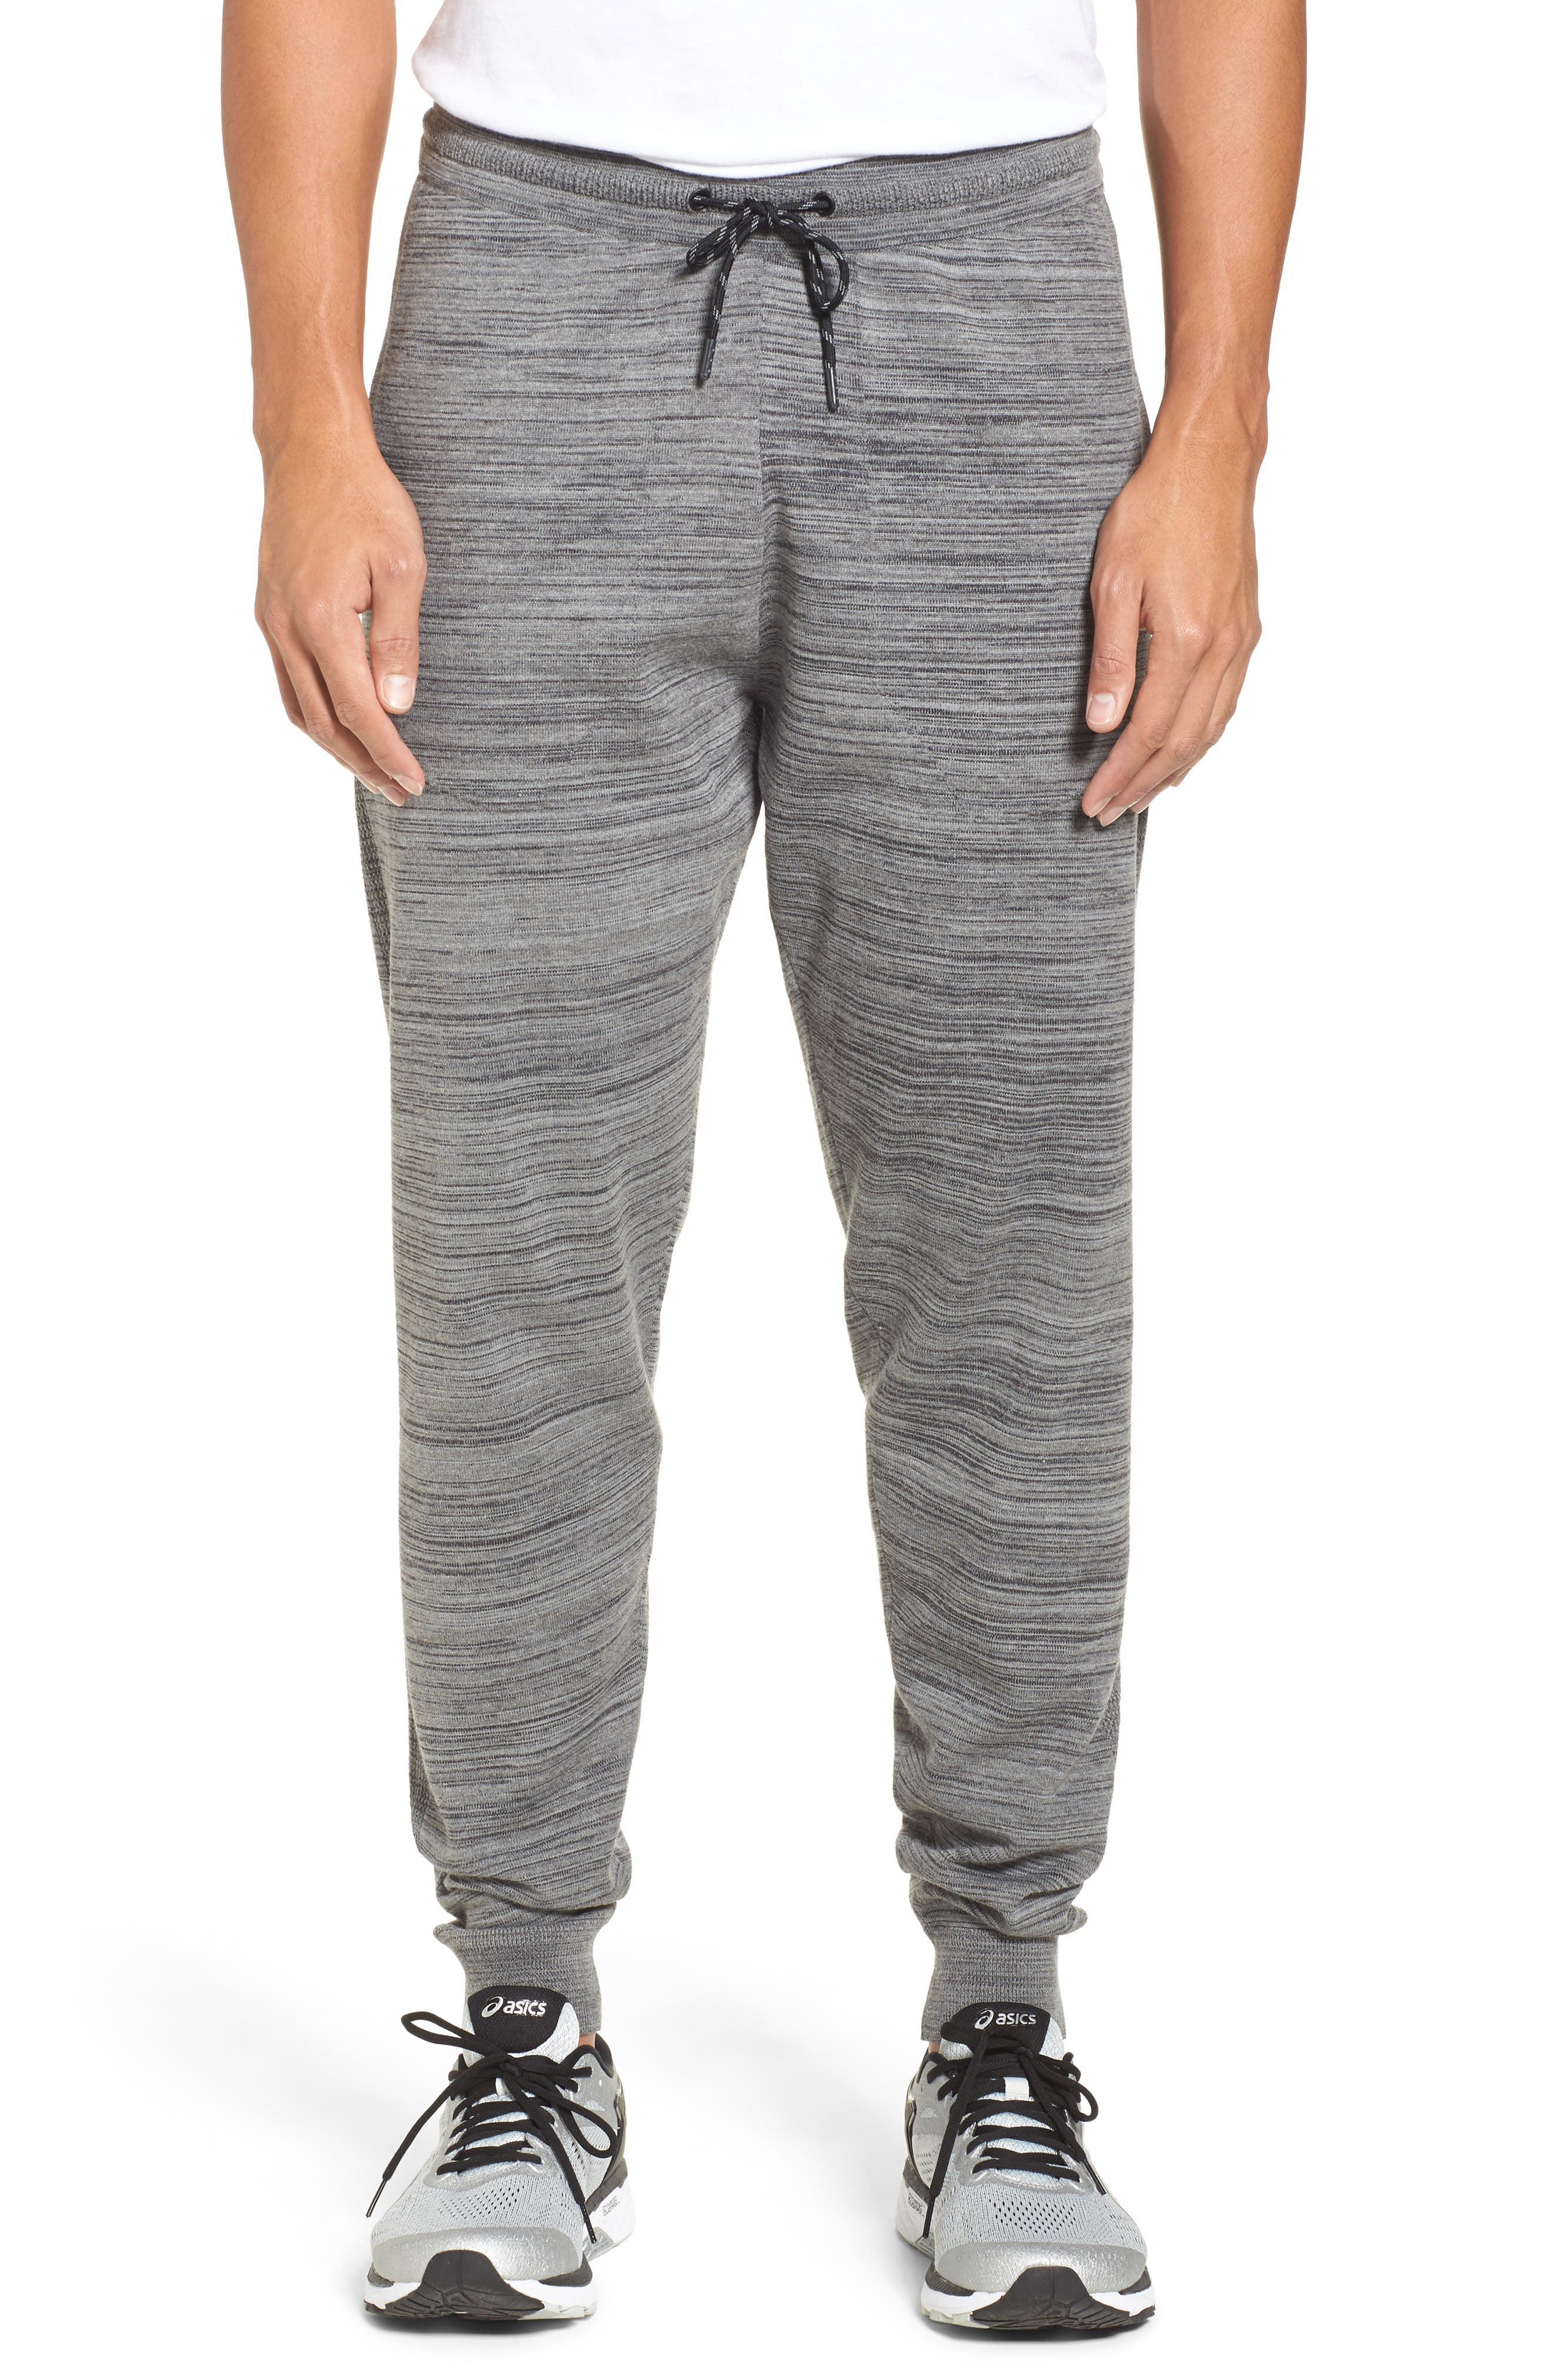 Tech Sweater Knit Jogger Pants,                             Main thumbnail 1, color,                             Grey Obsidian Spacedye